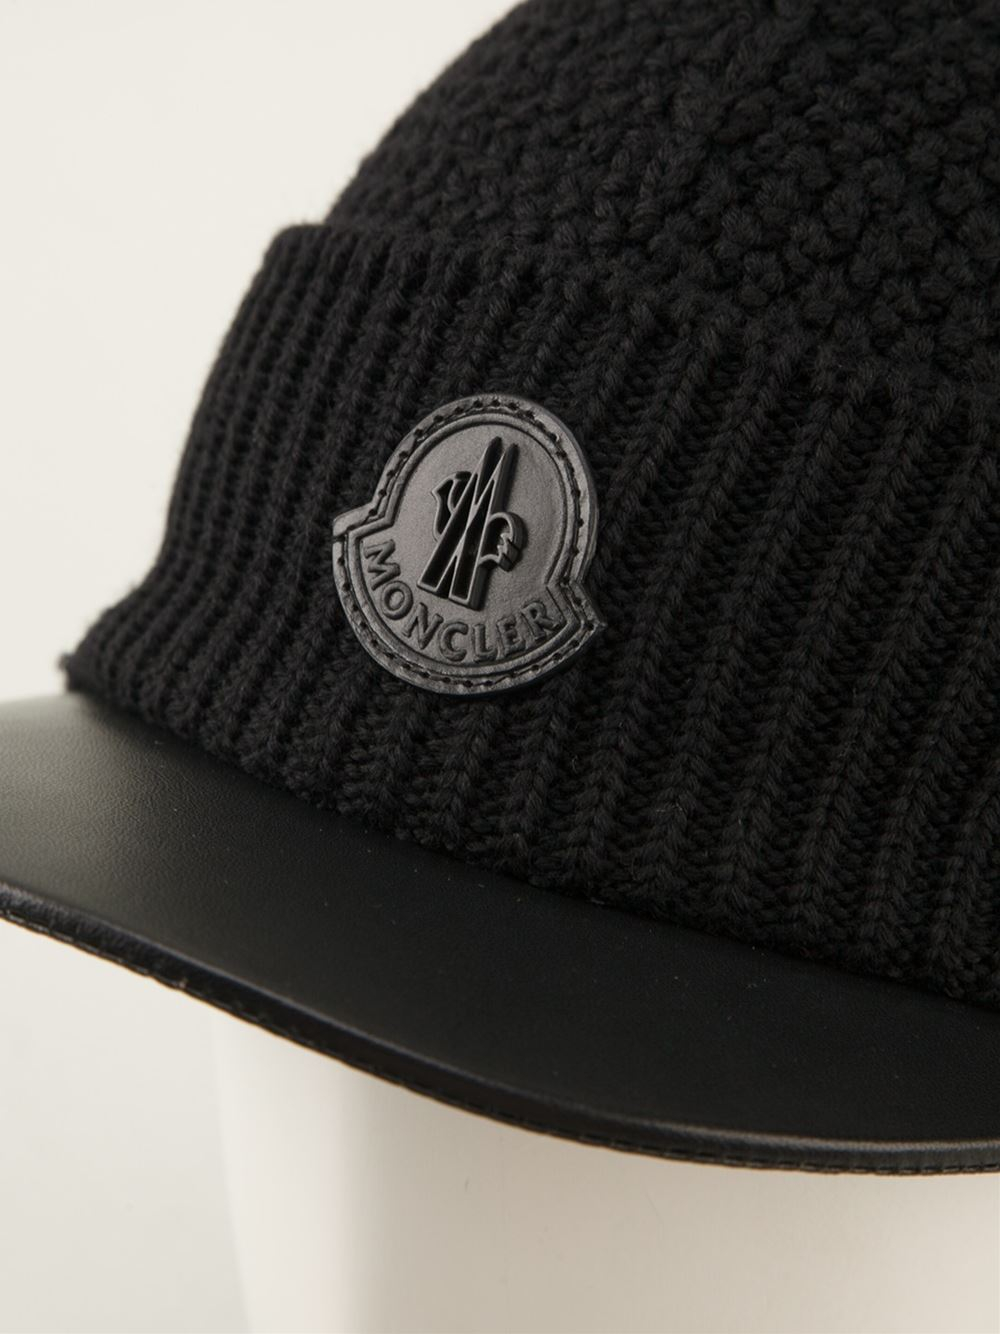 Lyst - Moncler Knitted Visor Hat in Black for Men 9e1064528fc